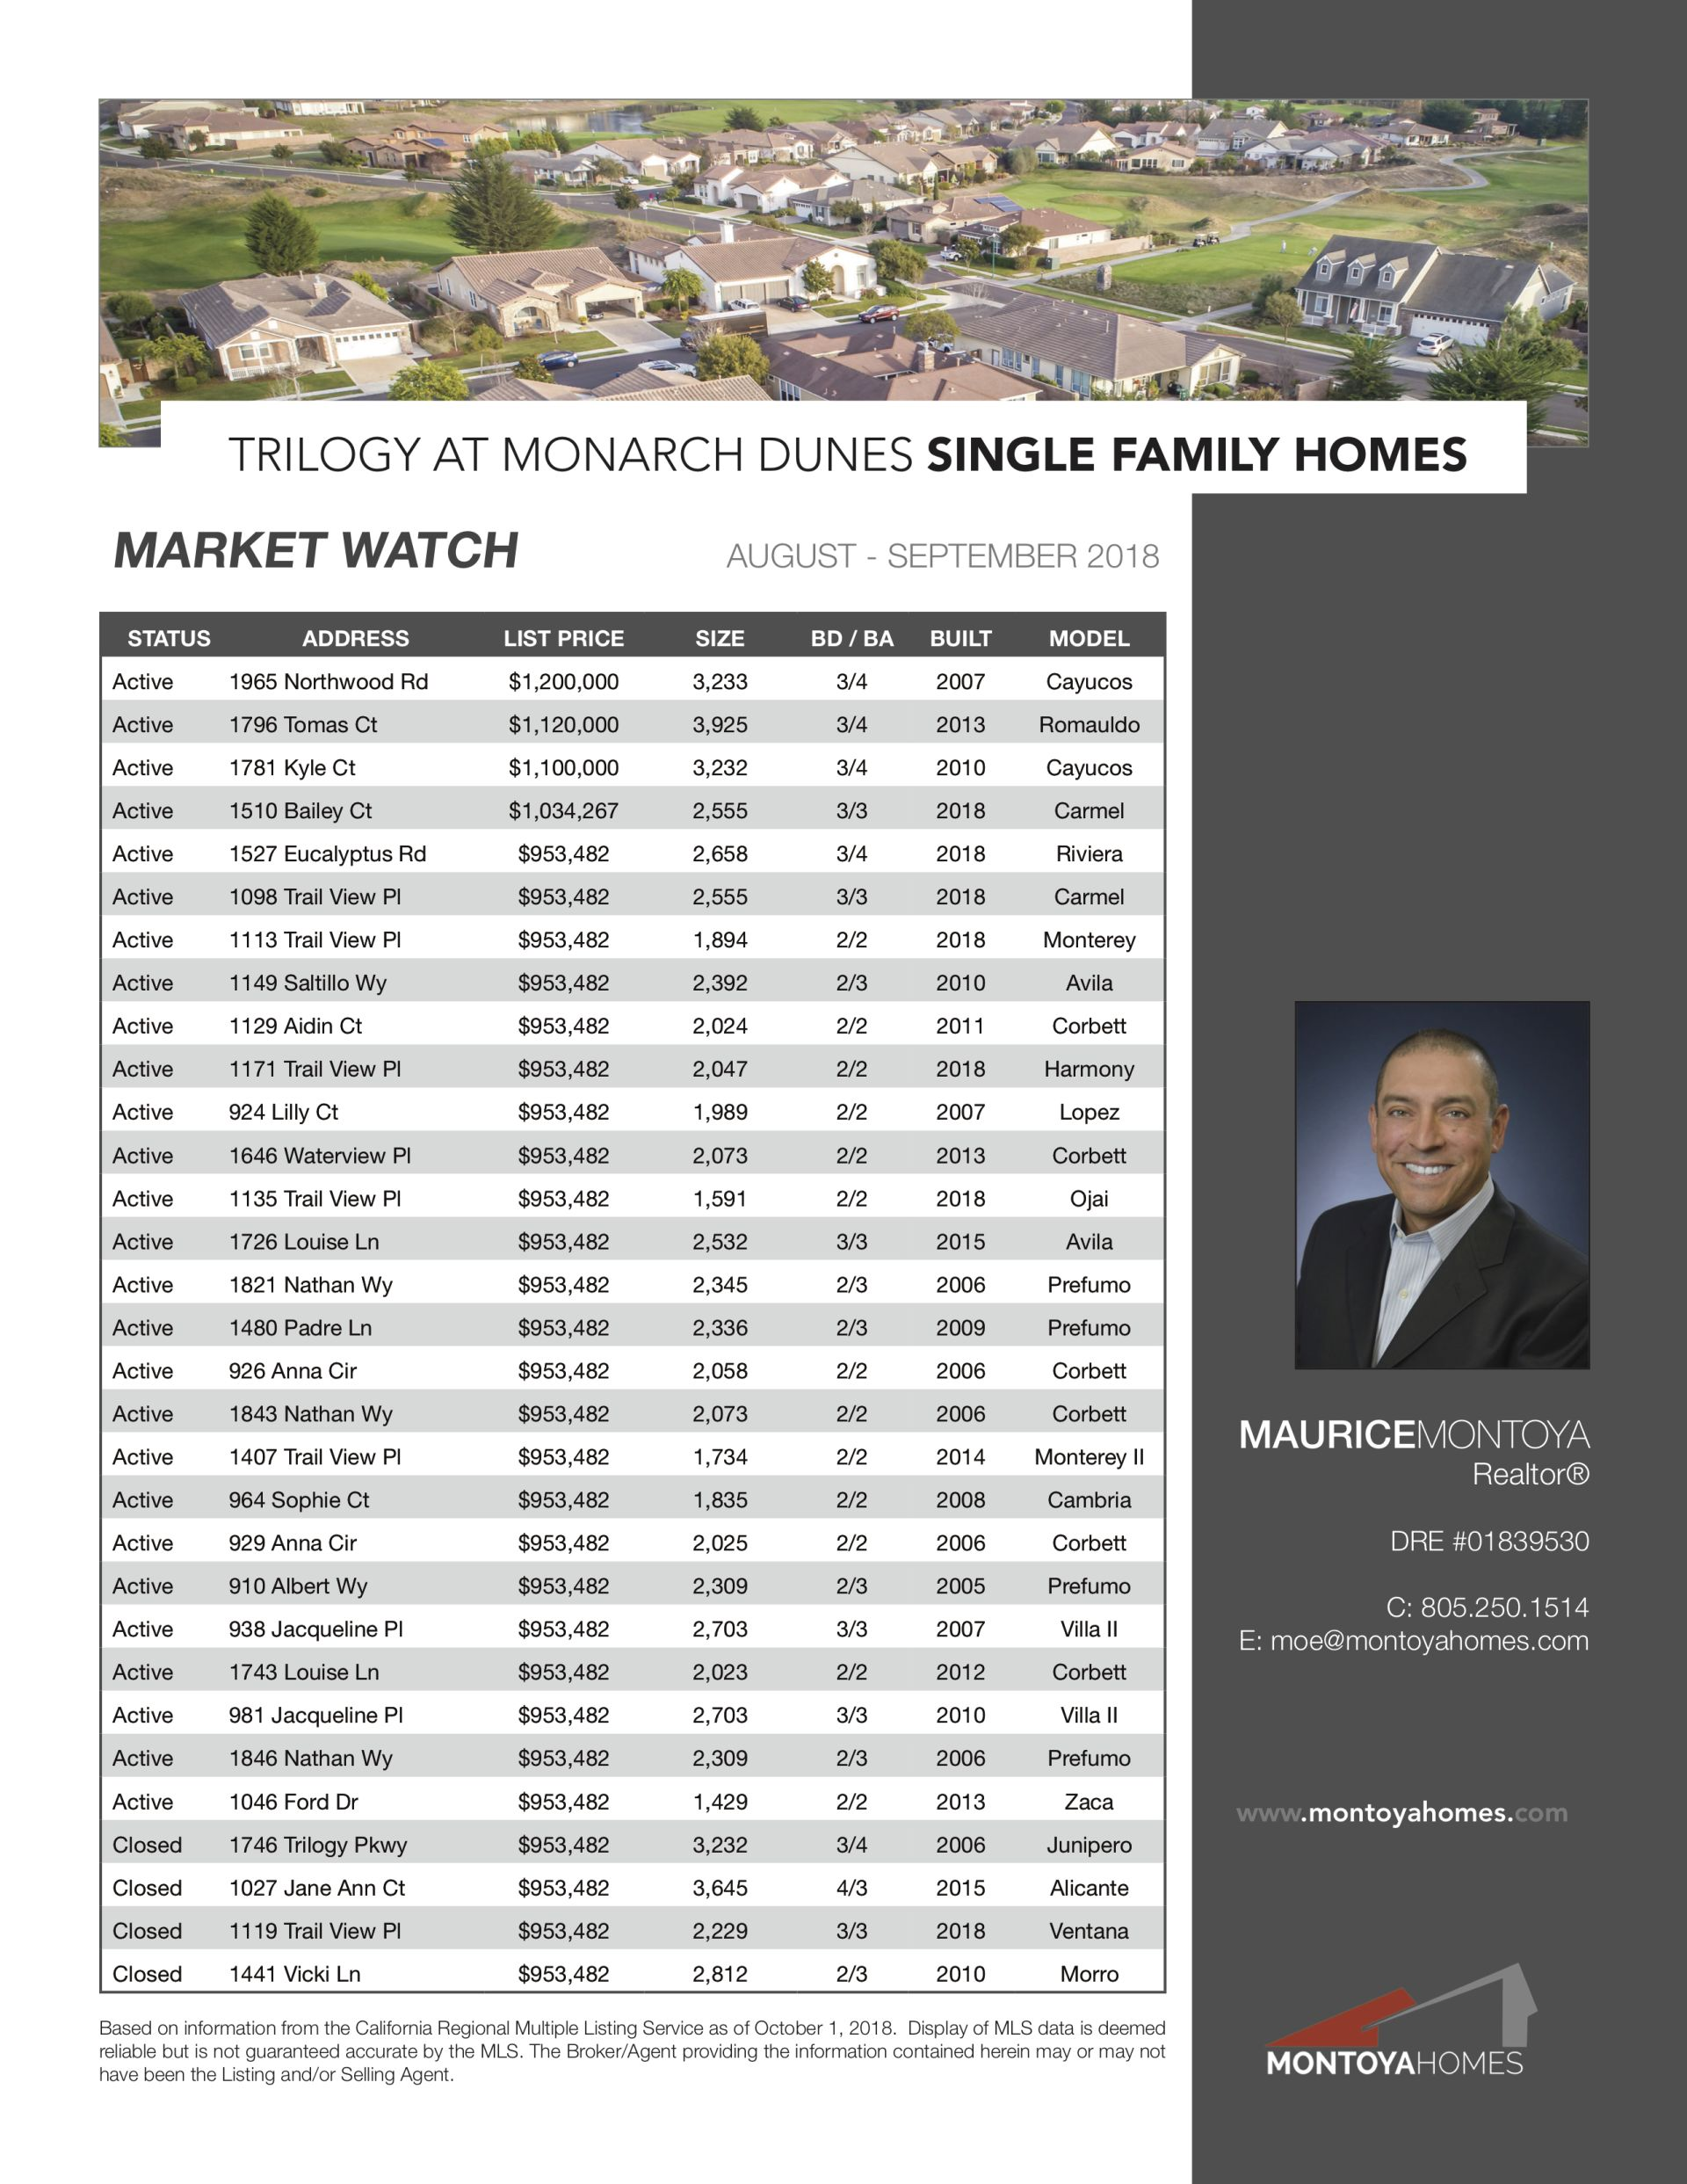 Trilogy at Monarch Dunes: Market Watch – October 2018